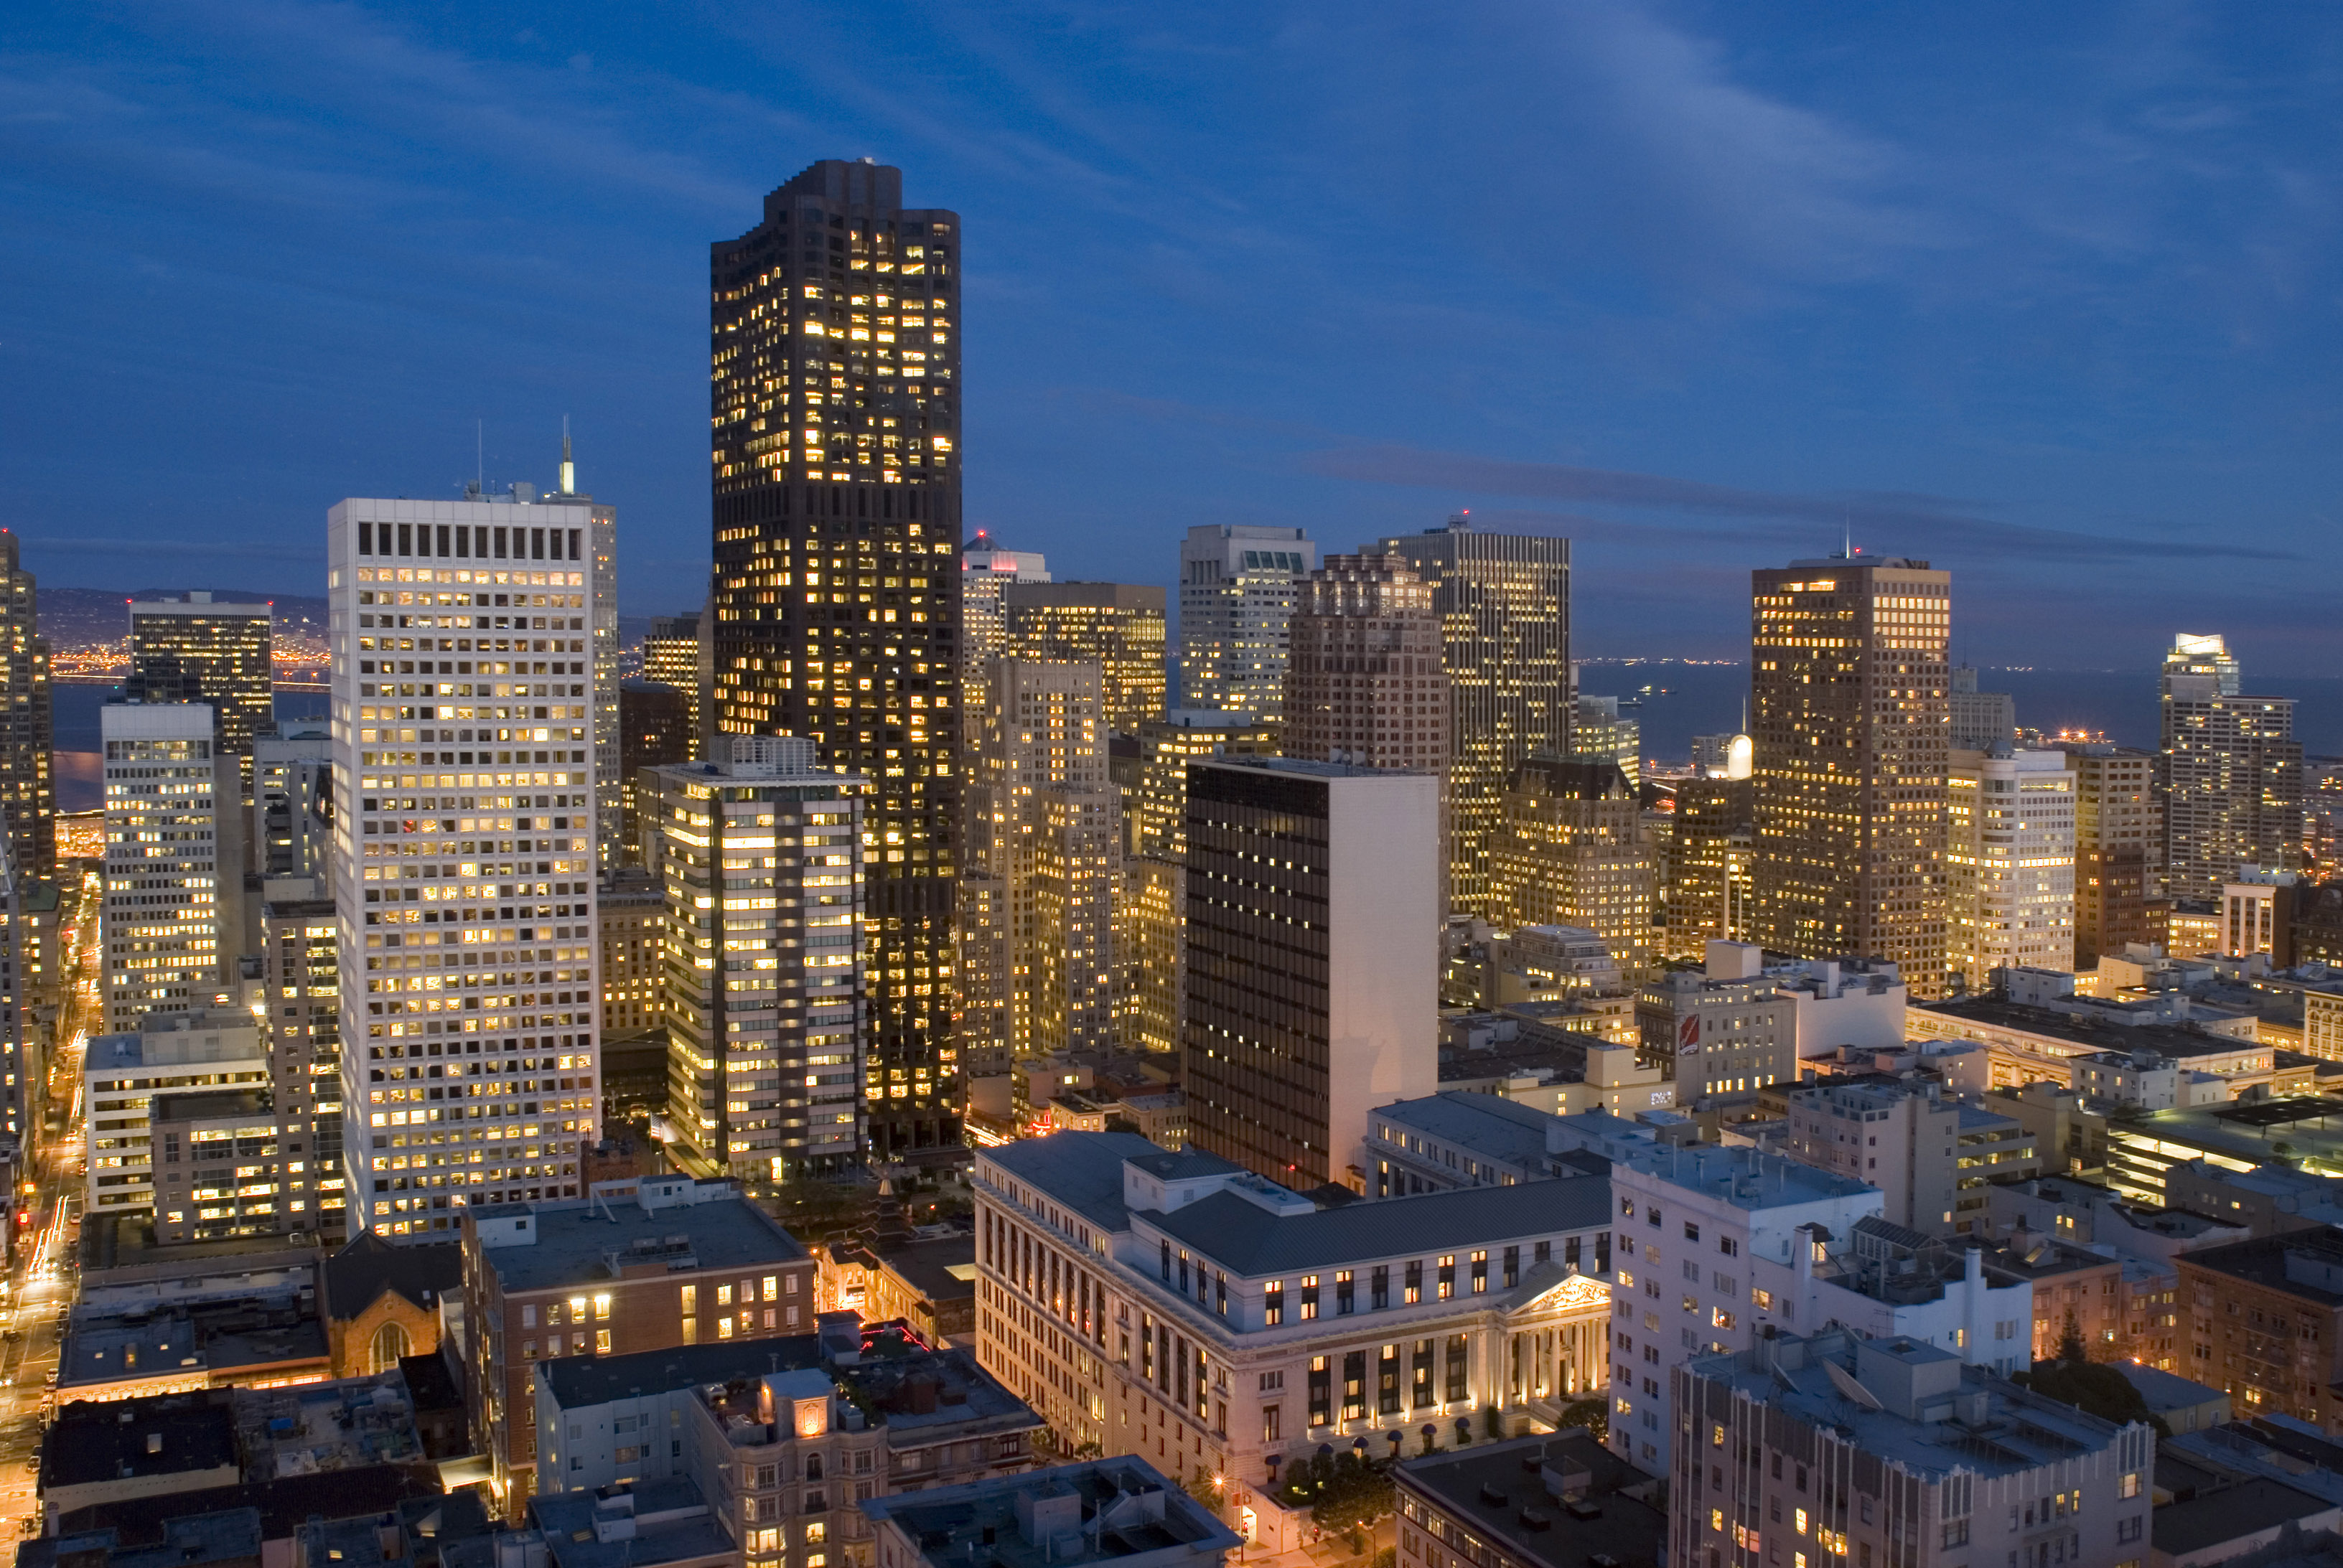 colourful and brightly lit cityscape of san francisco downtown at night